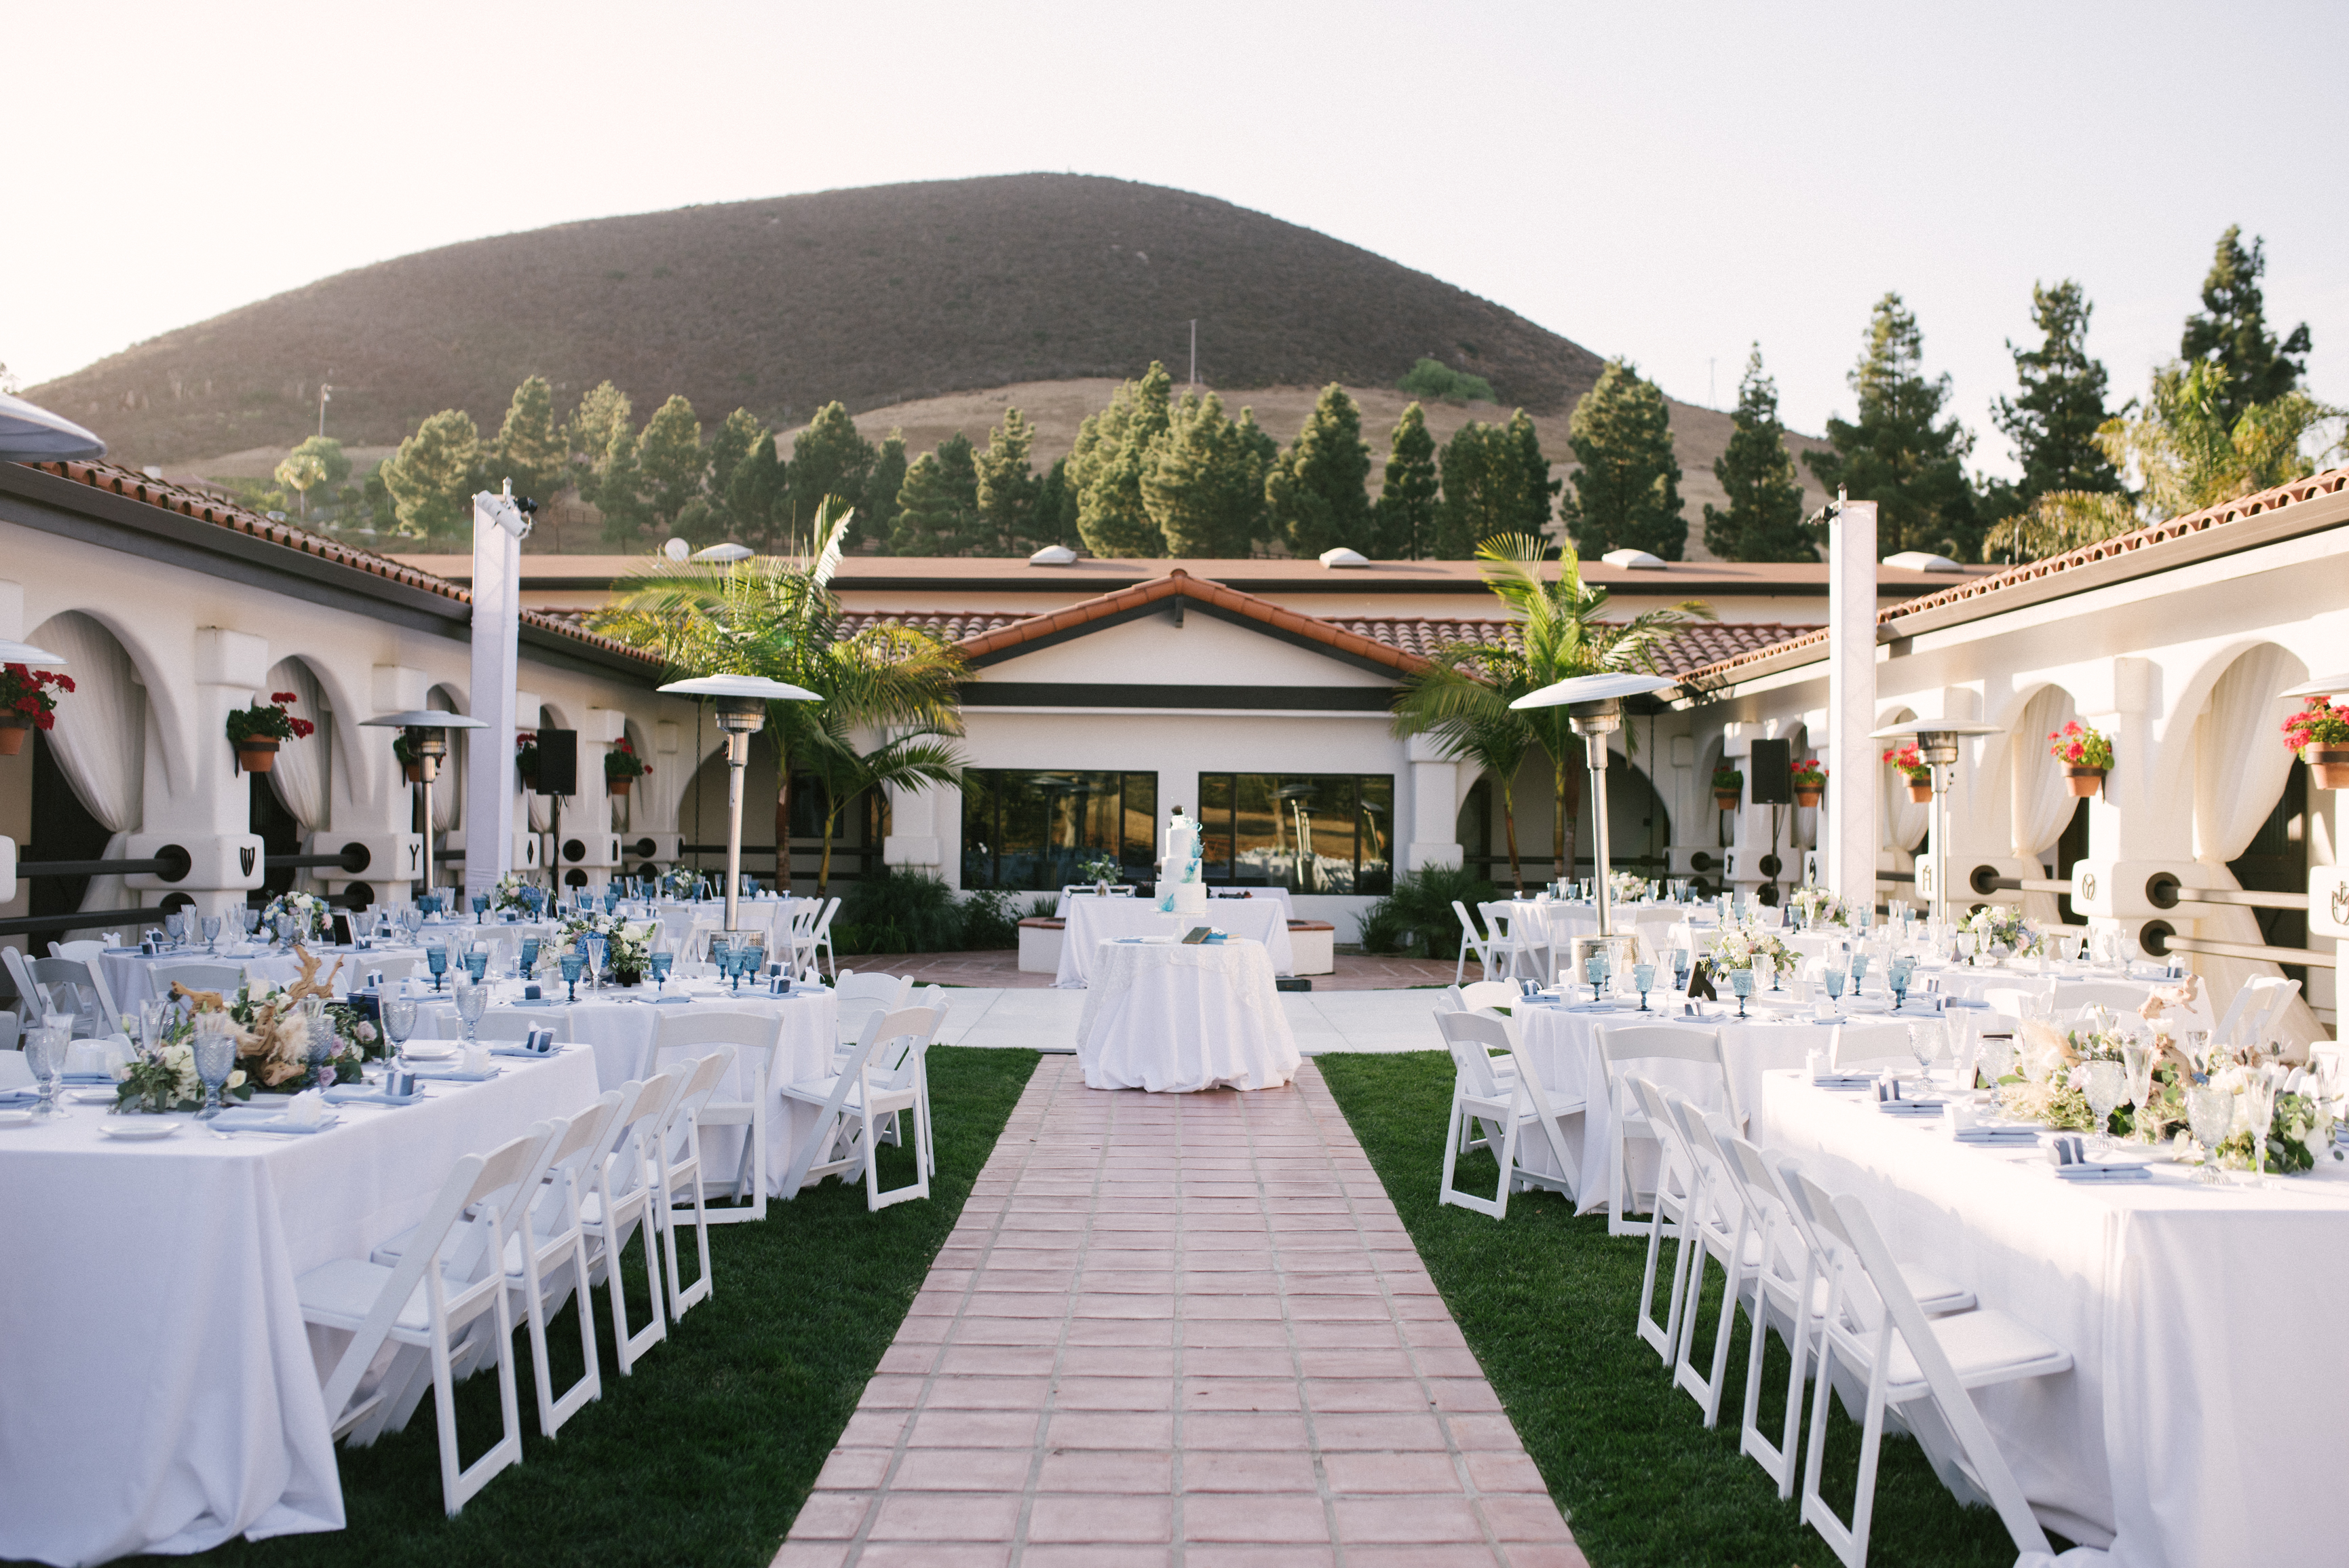 La Lomita Ranch Wedding - Le Festin